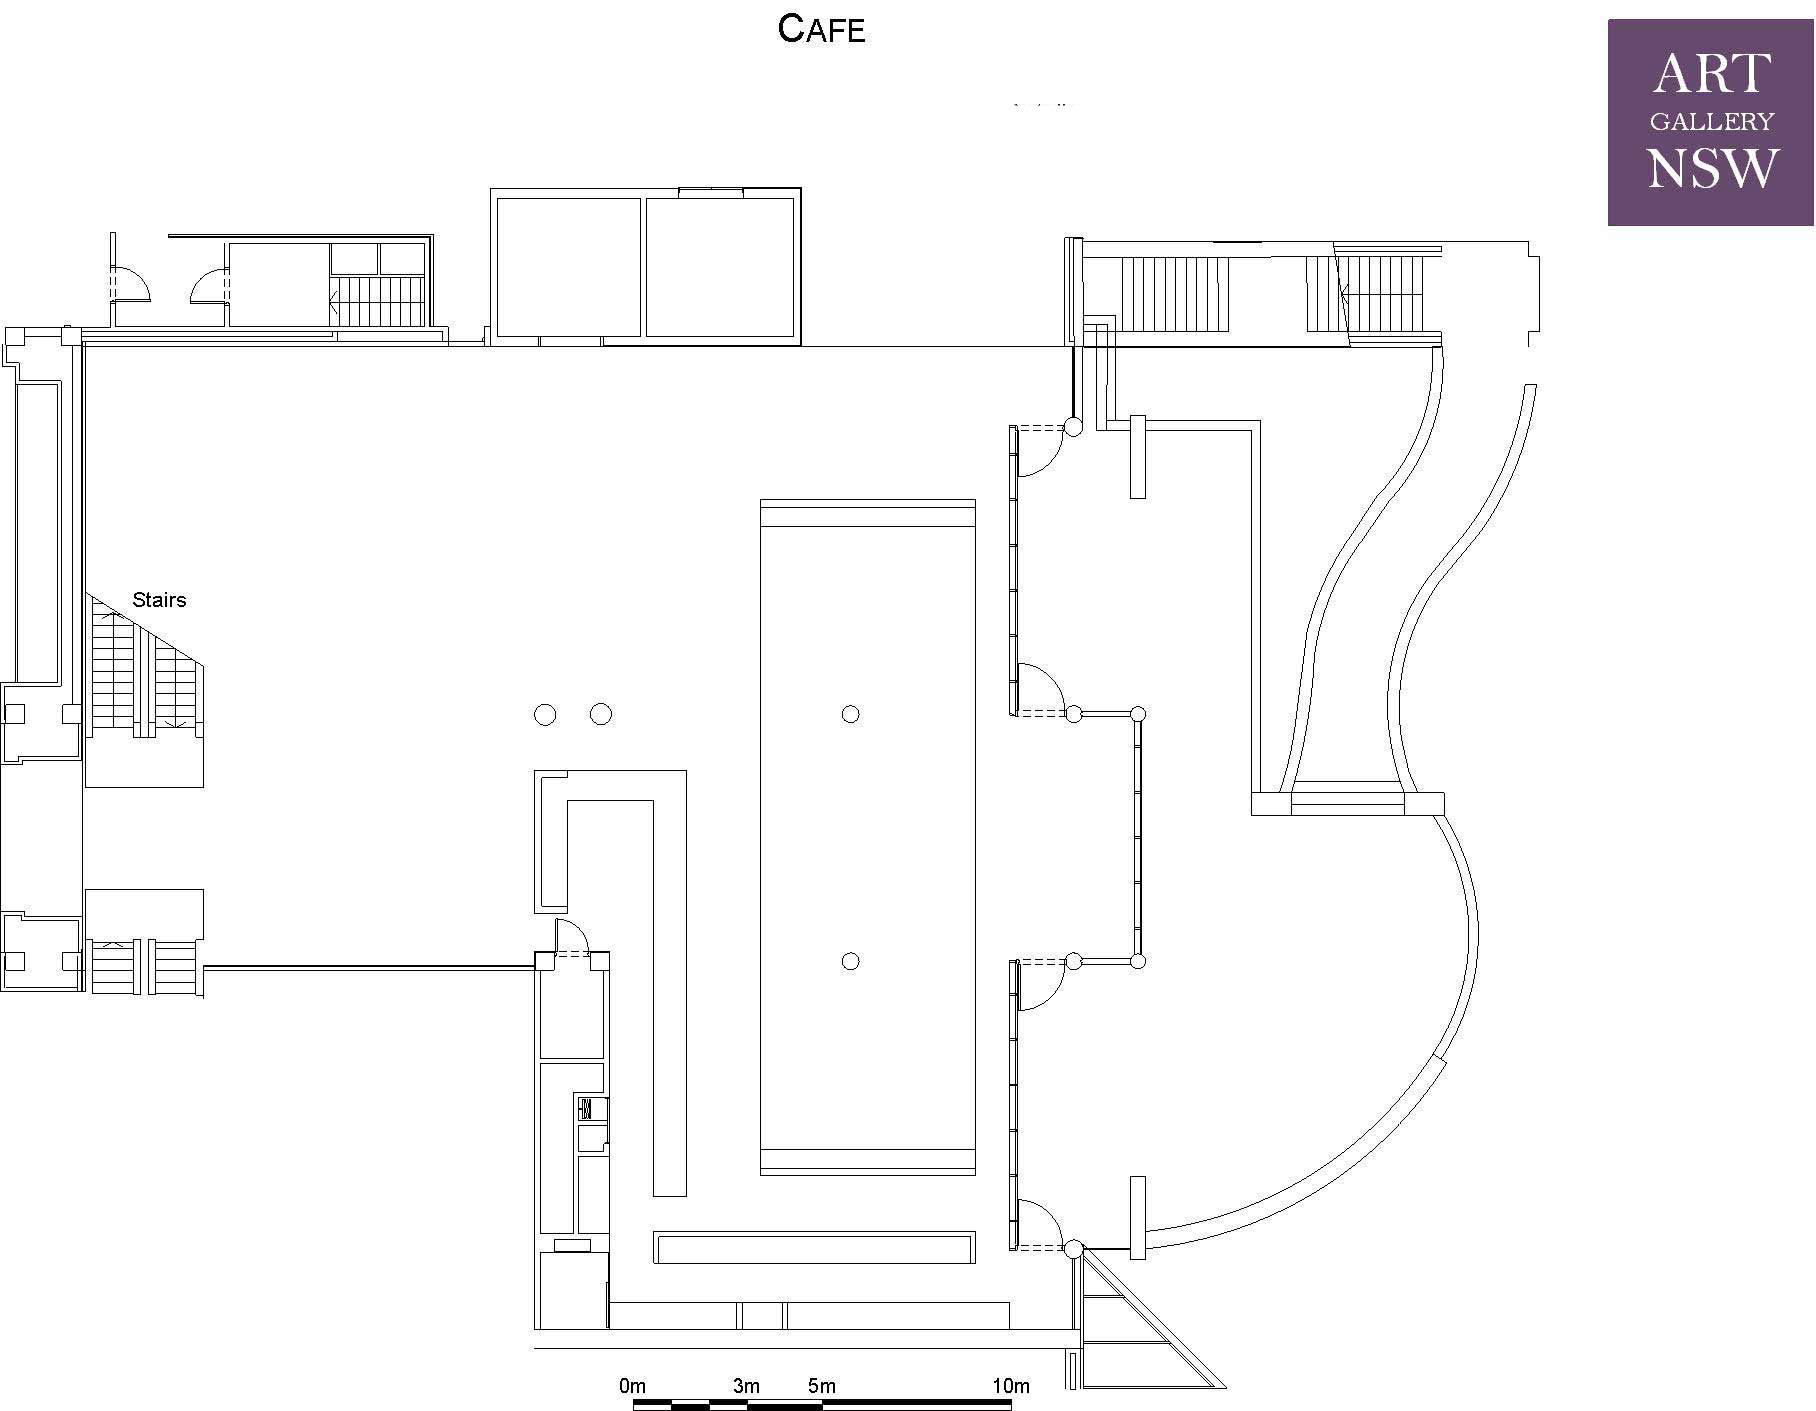 Terrace Floor Plans Cafe Courtyard Foyer Venue Hire Facilities Plan